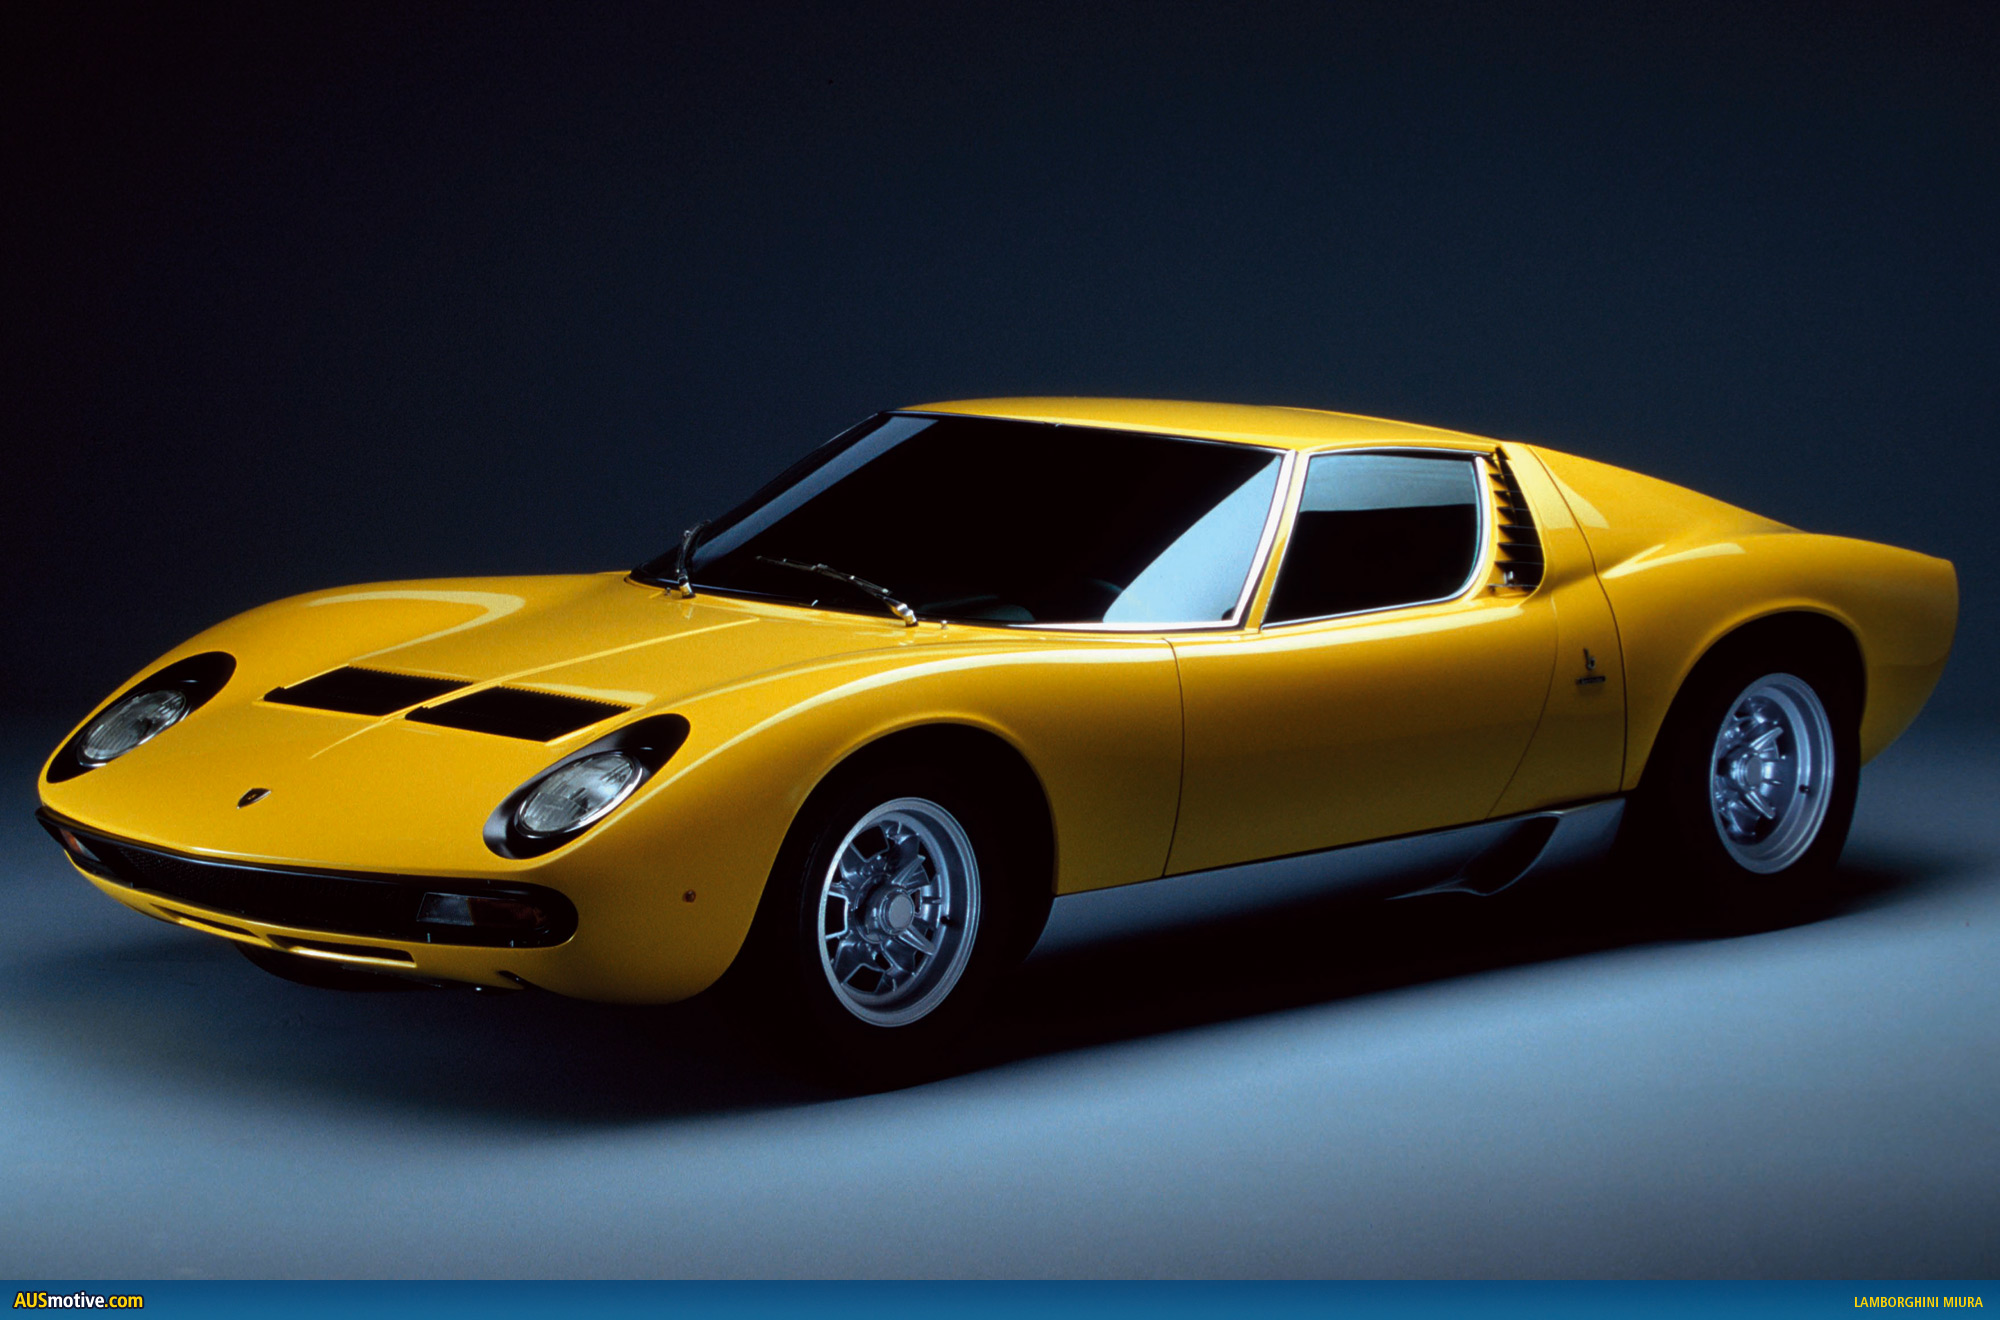 random wallpapers lamborghini miura sv. Black Bedroom Furniture Sets. Home Design Ideas